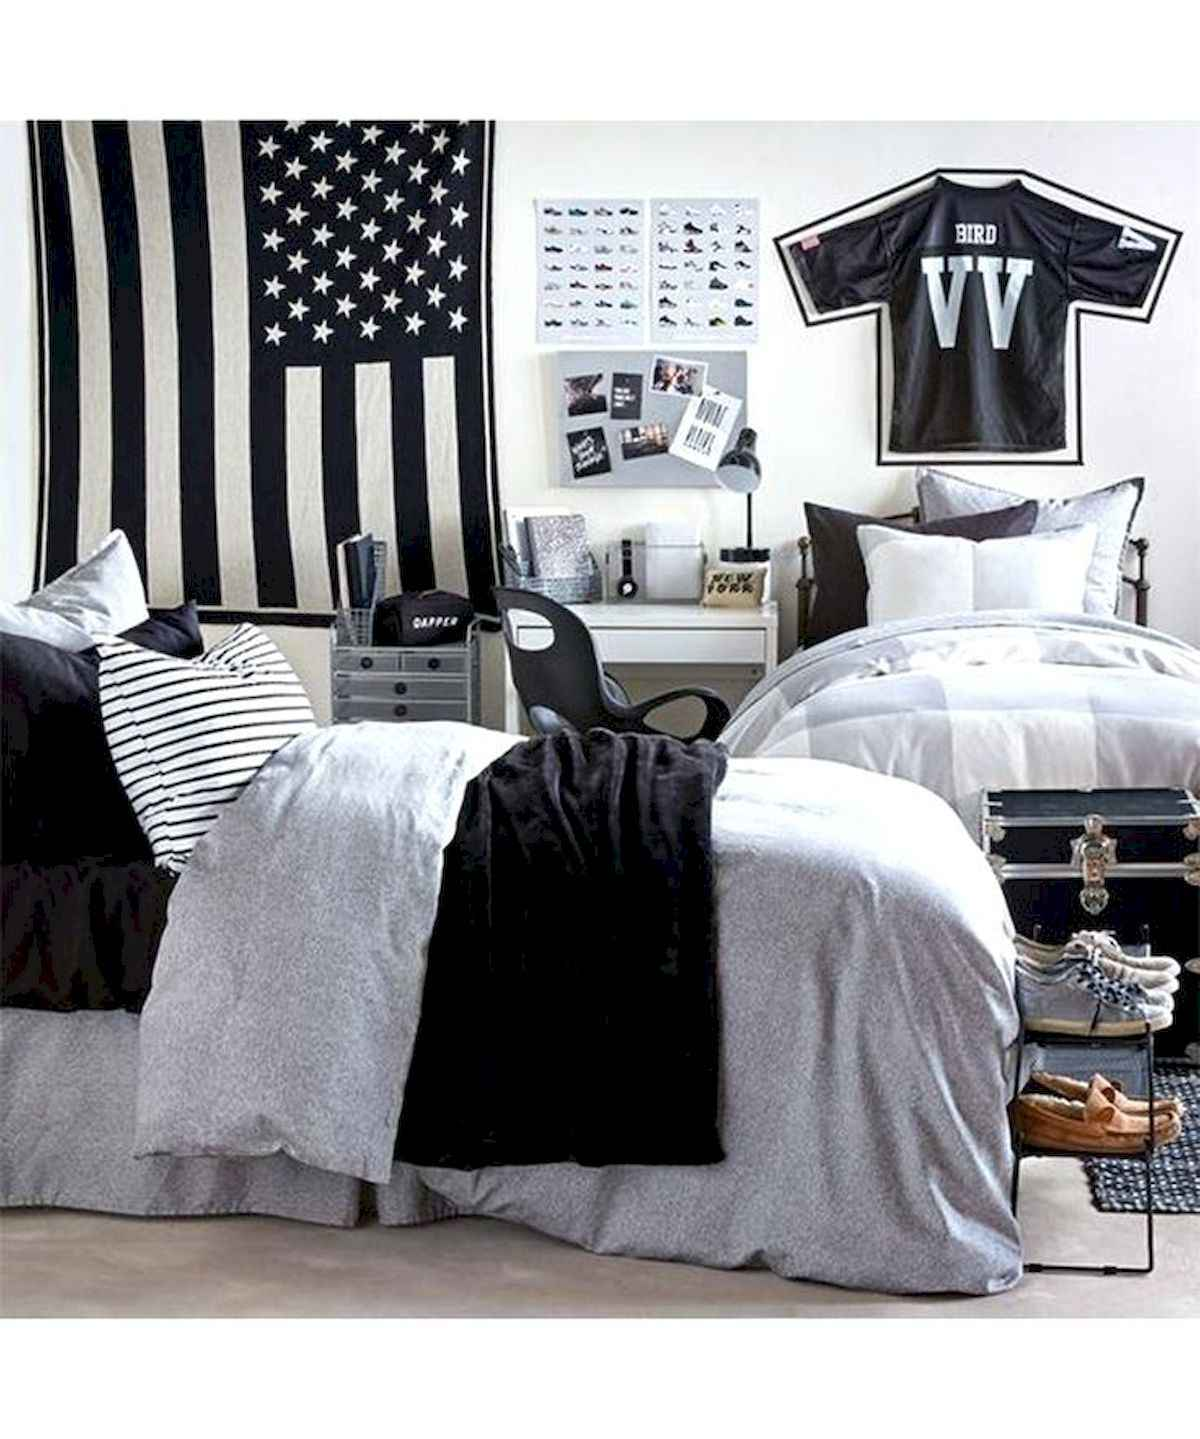 60 Gorgeous College Dorm Room Decorating Ideas And Makeover (39)